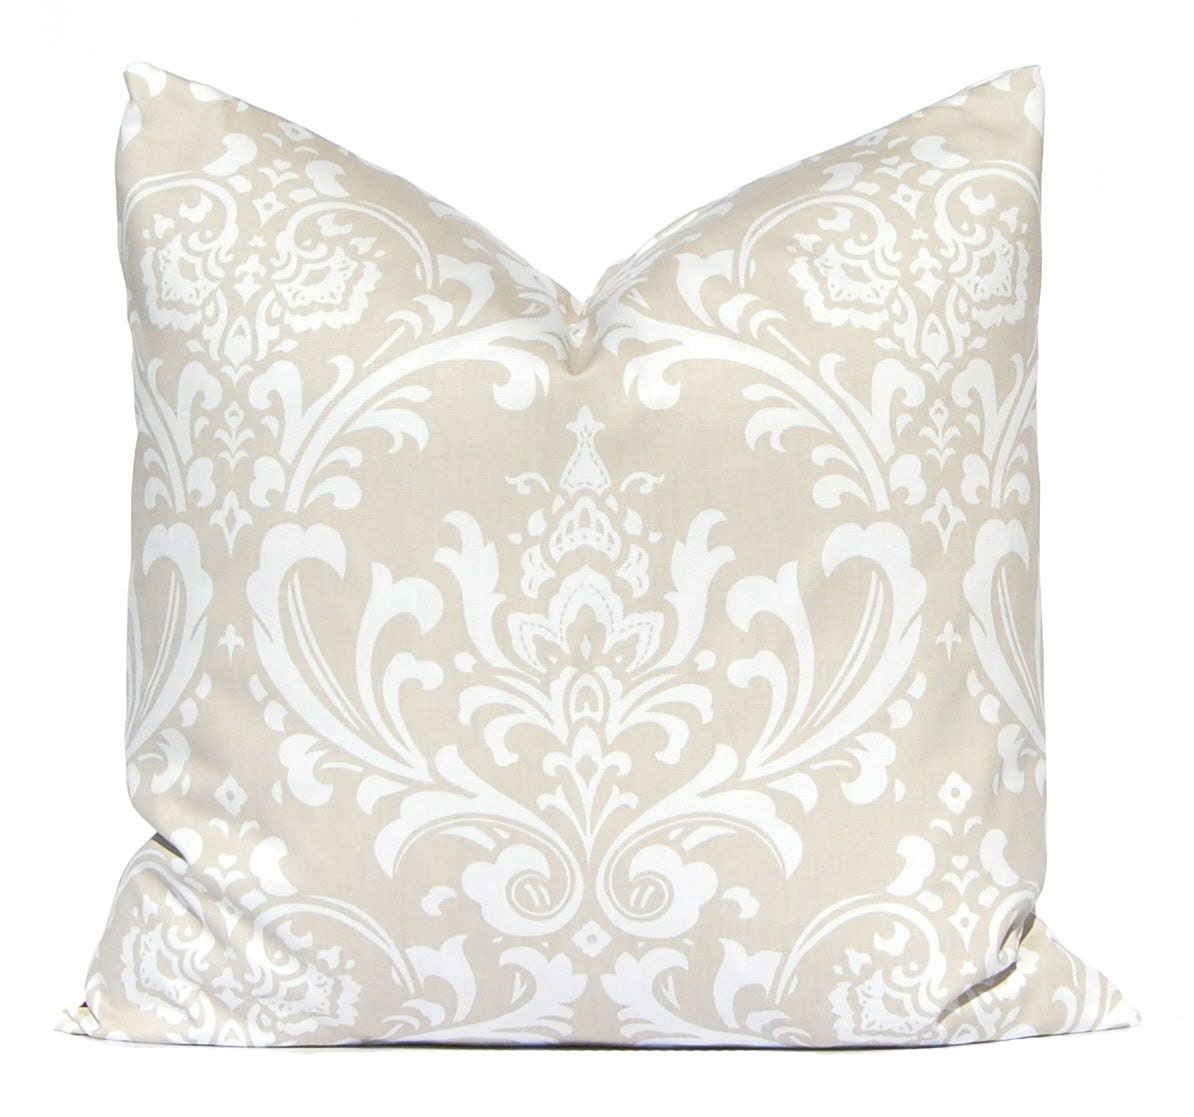 Throw Pillow Euro Sham : Euro Sham Pillow Decorative Pillow Throw by FestiveHomeDecor